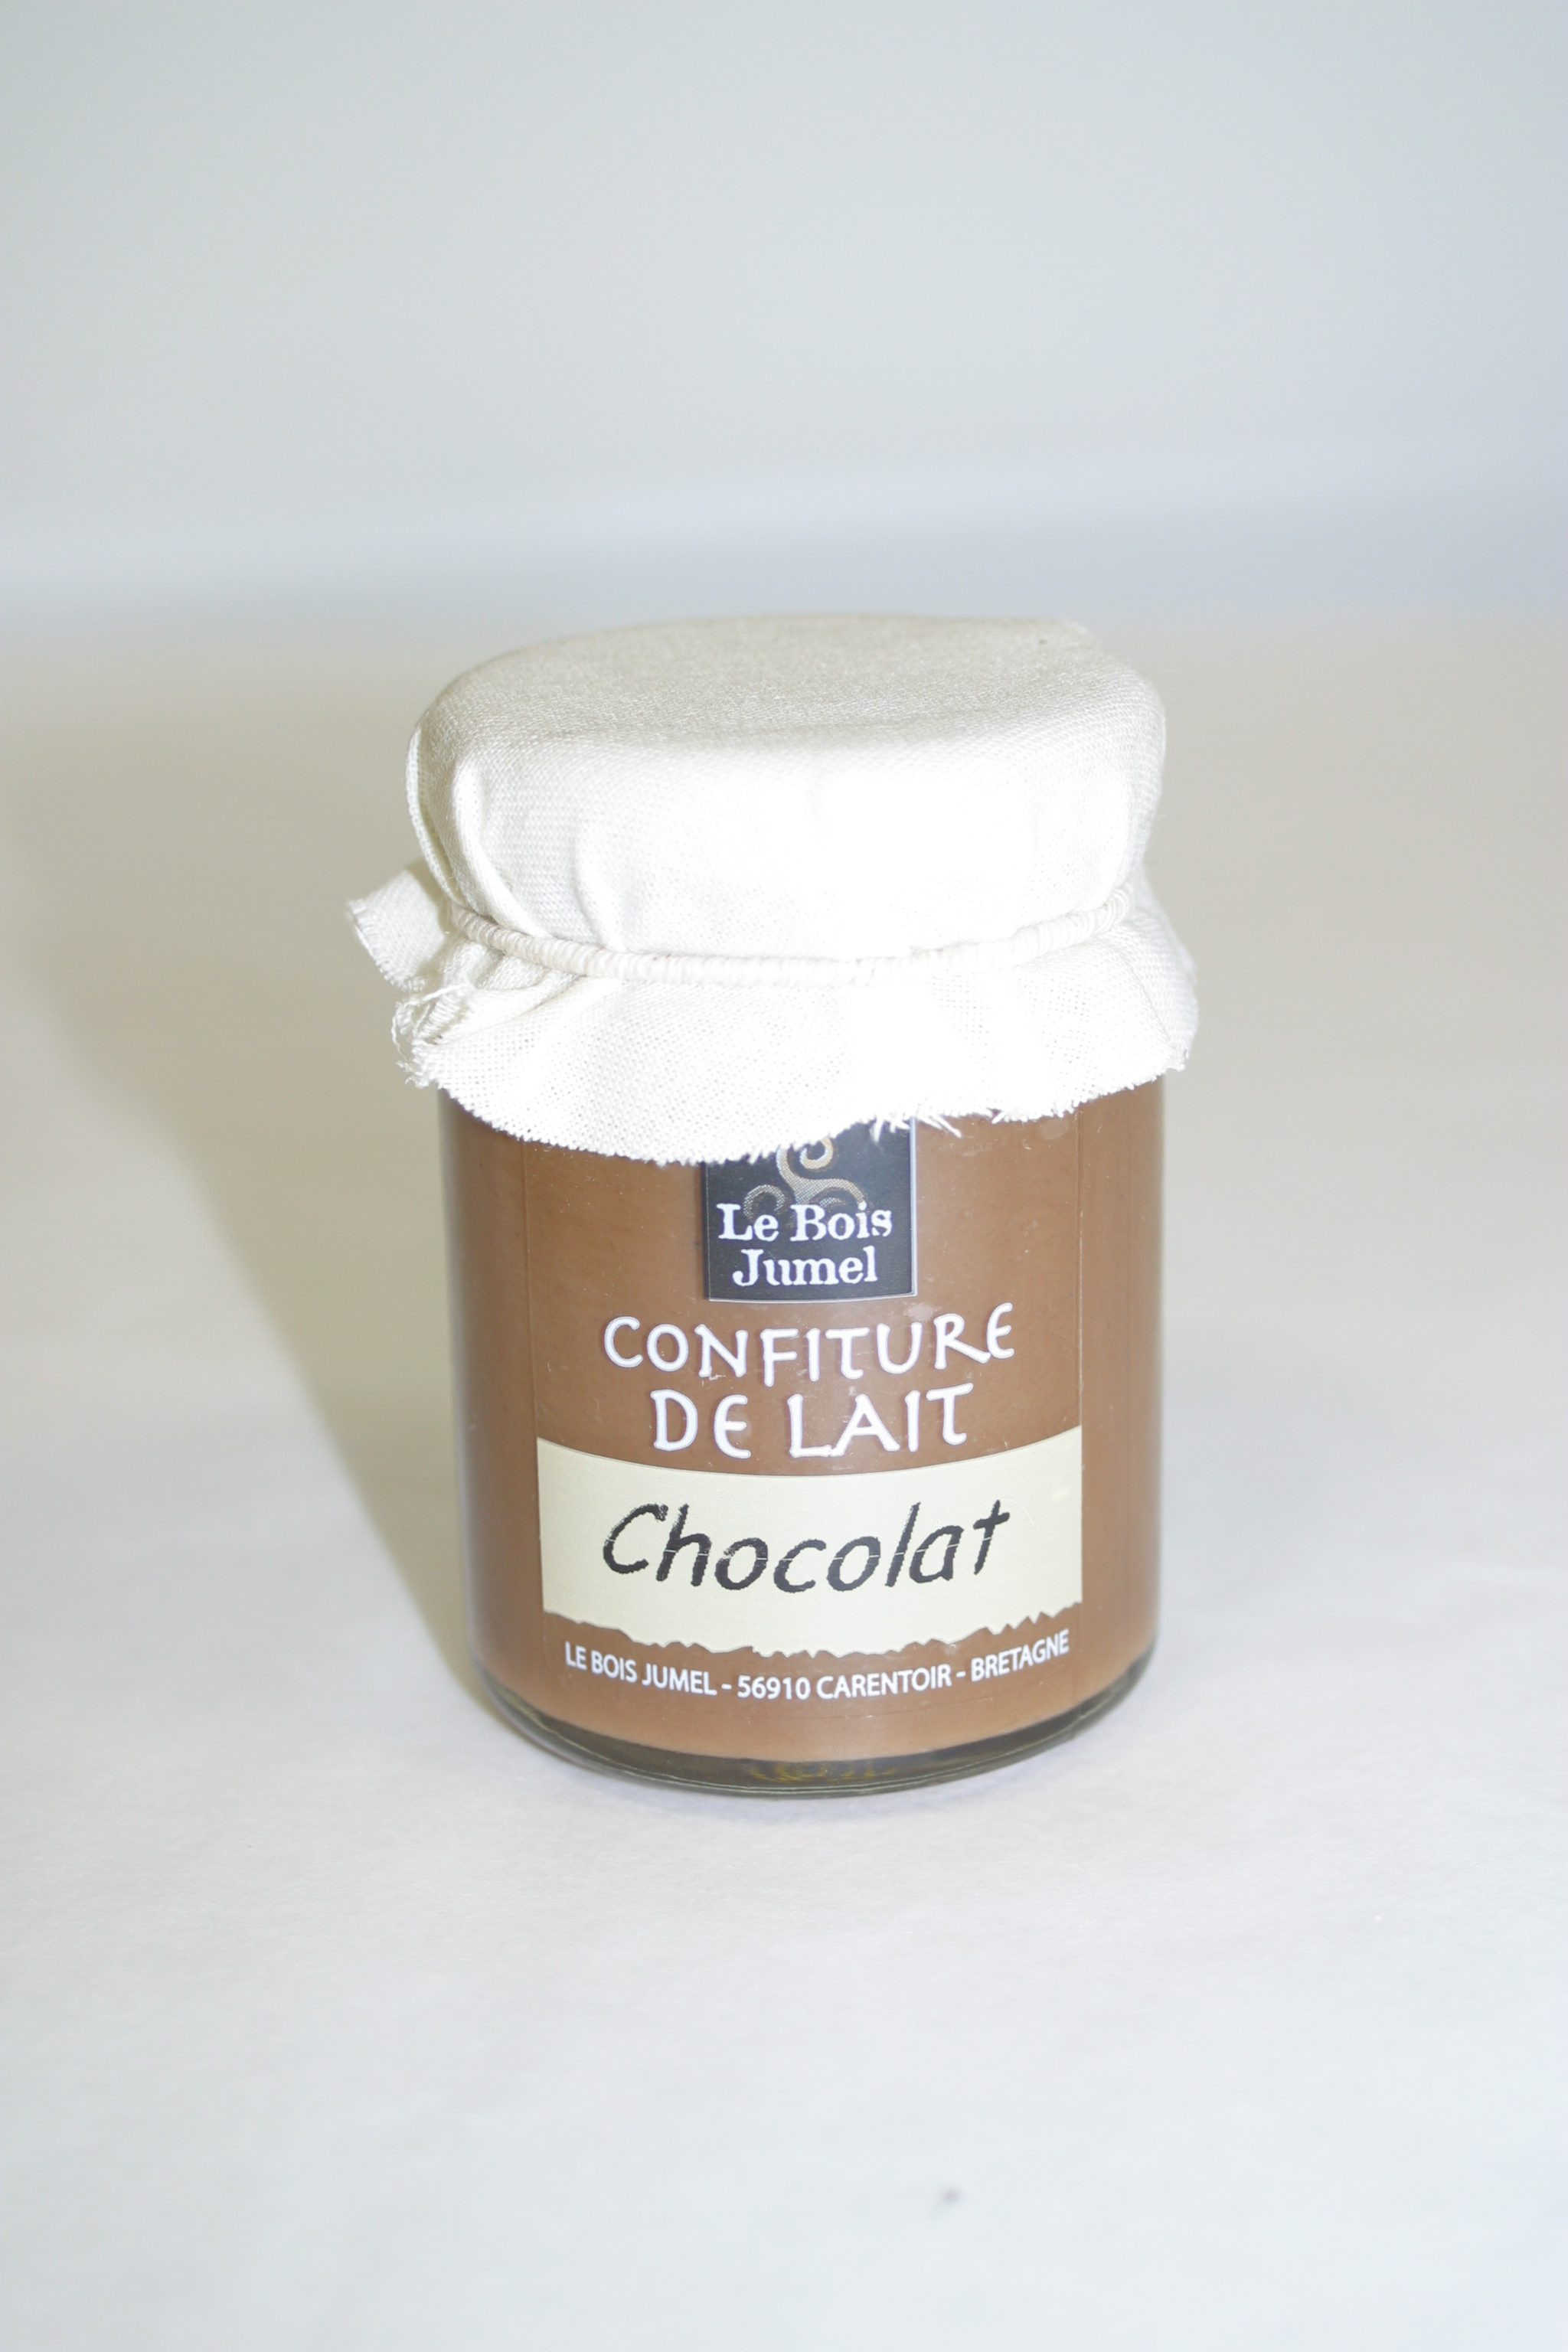 confiture de lait au chocolat le bois jumel made in france box. Black Bedroom Furniture Sets. Home Design Ideas